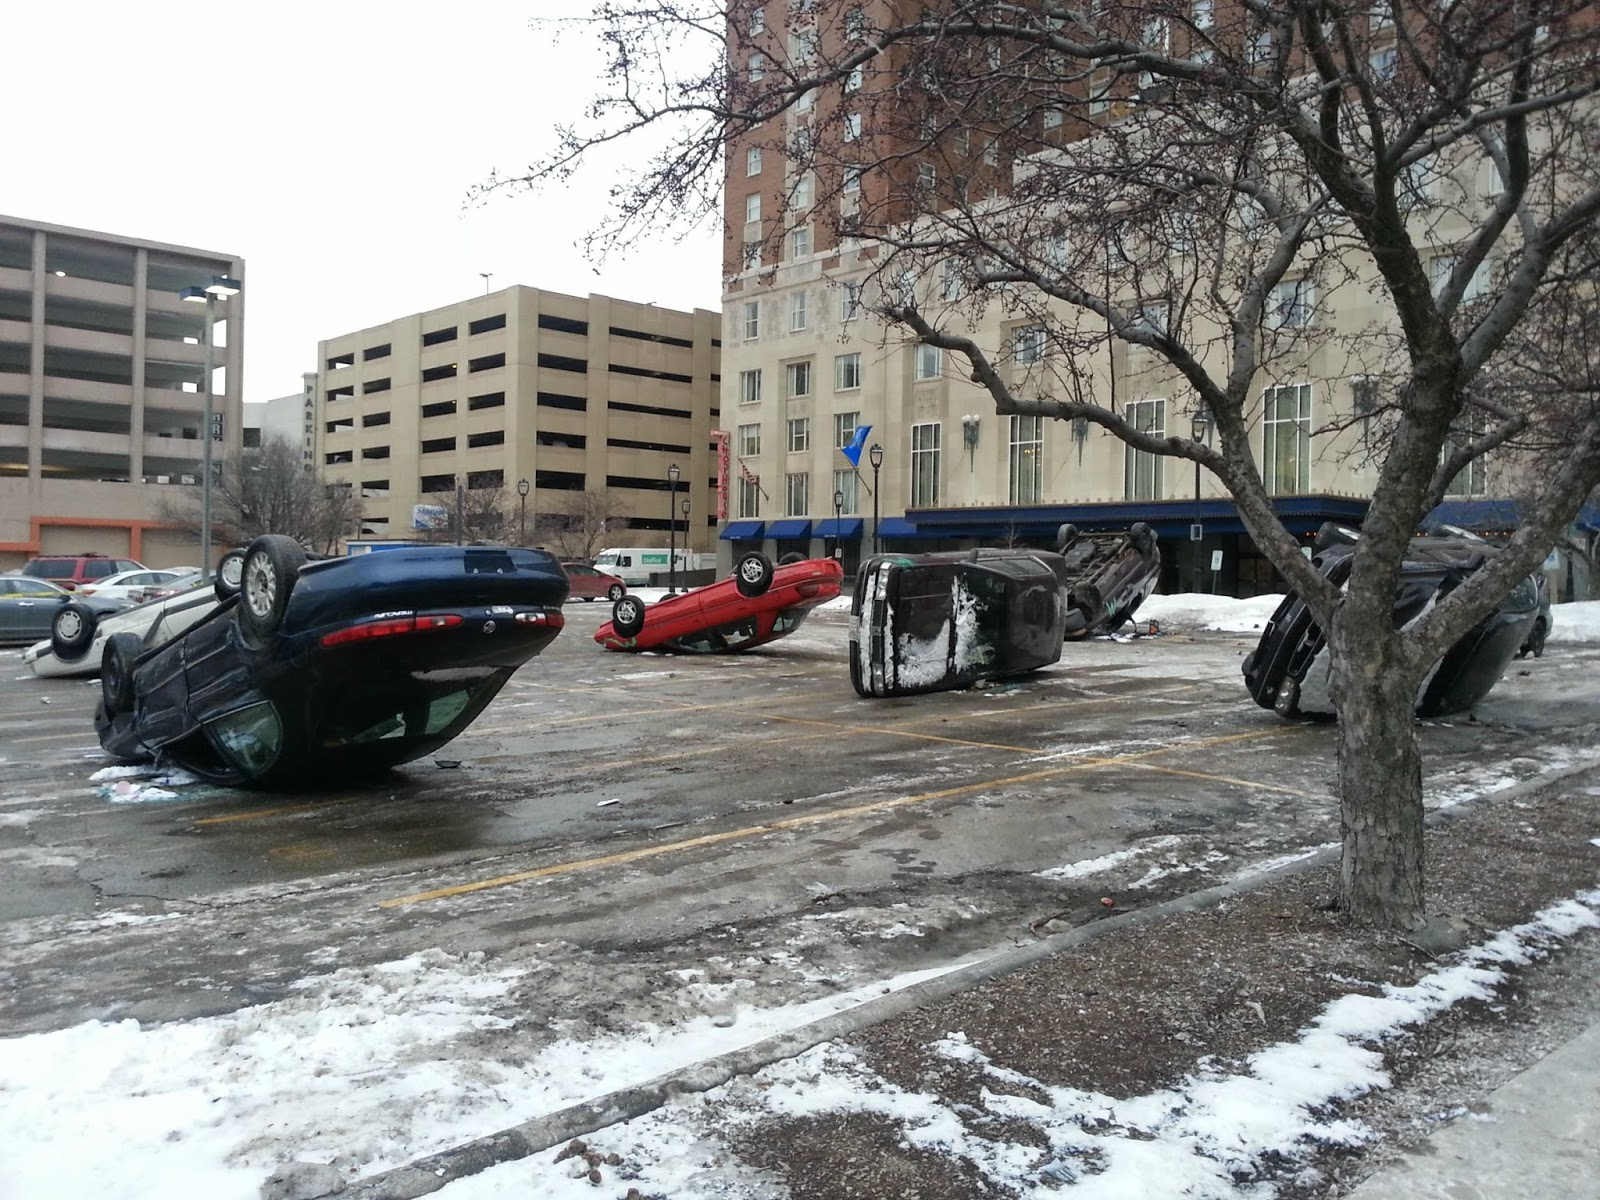 What the heck is going on? - Umm… Why Are All the Cars in the Parking Lot On Their Side?